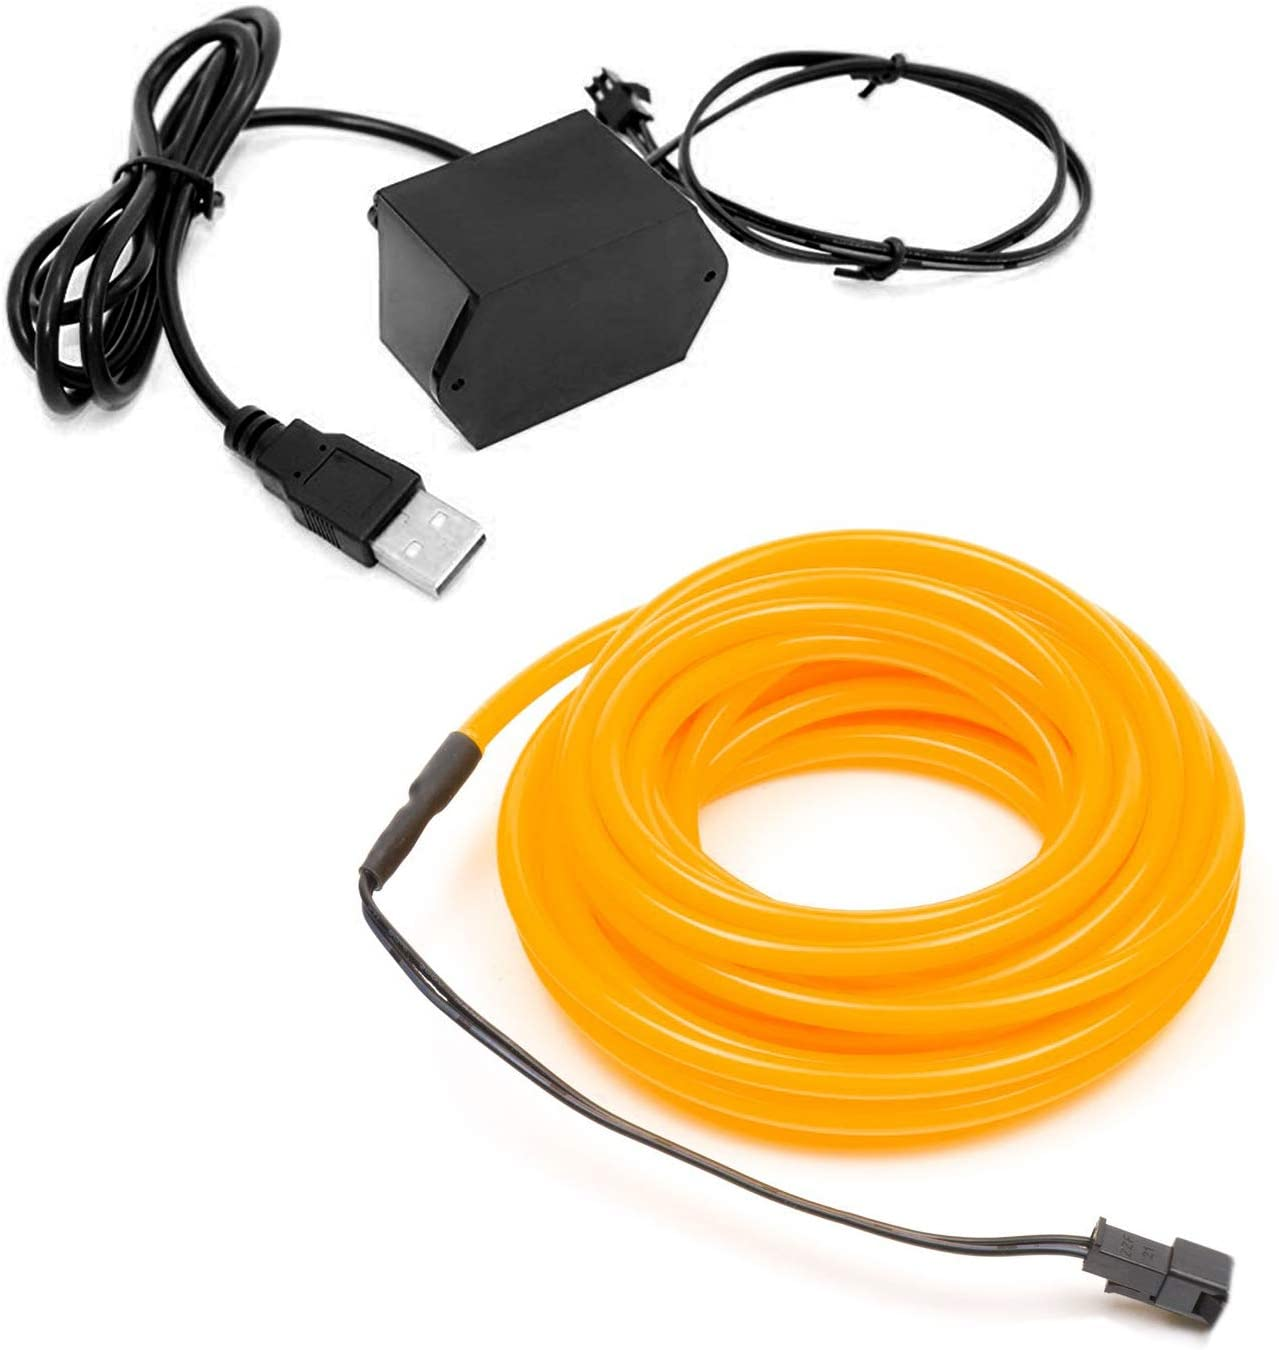 3-Pack 2m/6.5ft Yellow Neon LED Light Glow EL Wire - 3.2 mm Thick - Powered by 12V USB Port - Craft Neon Wire String Light for DIY Project Costume Accessories Cosplay